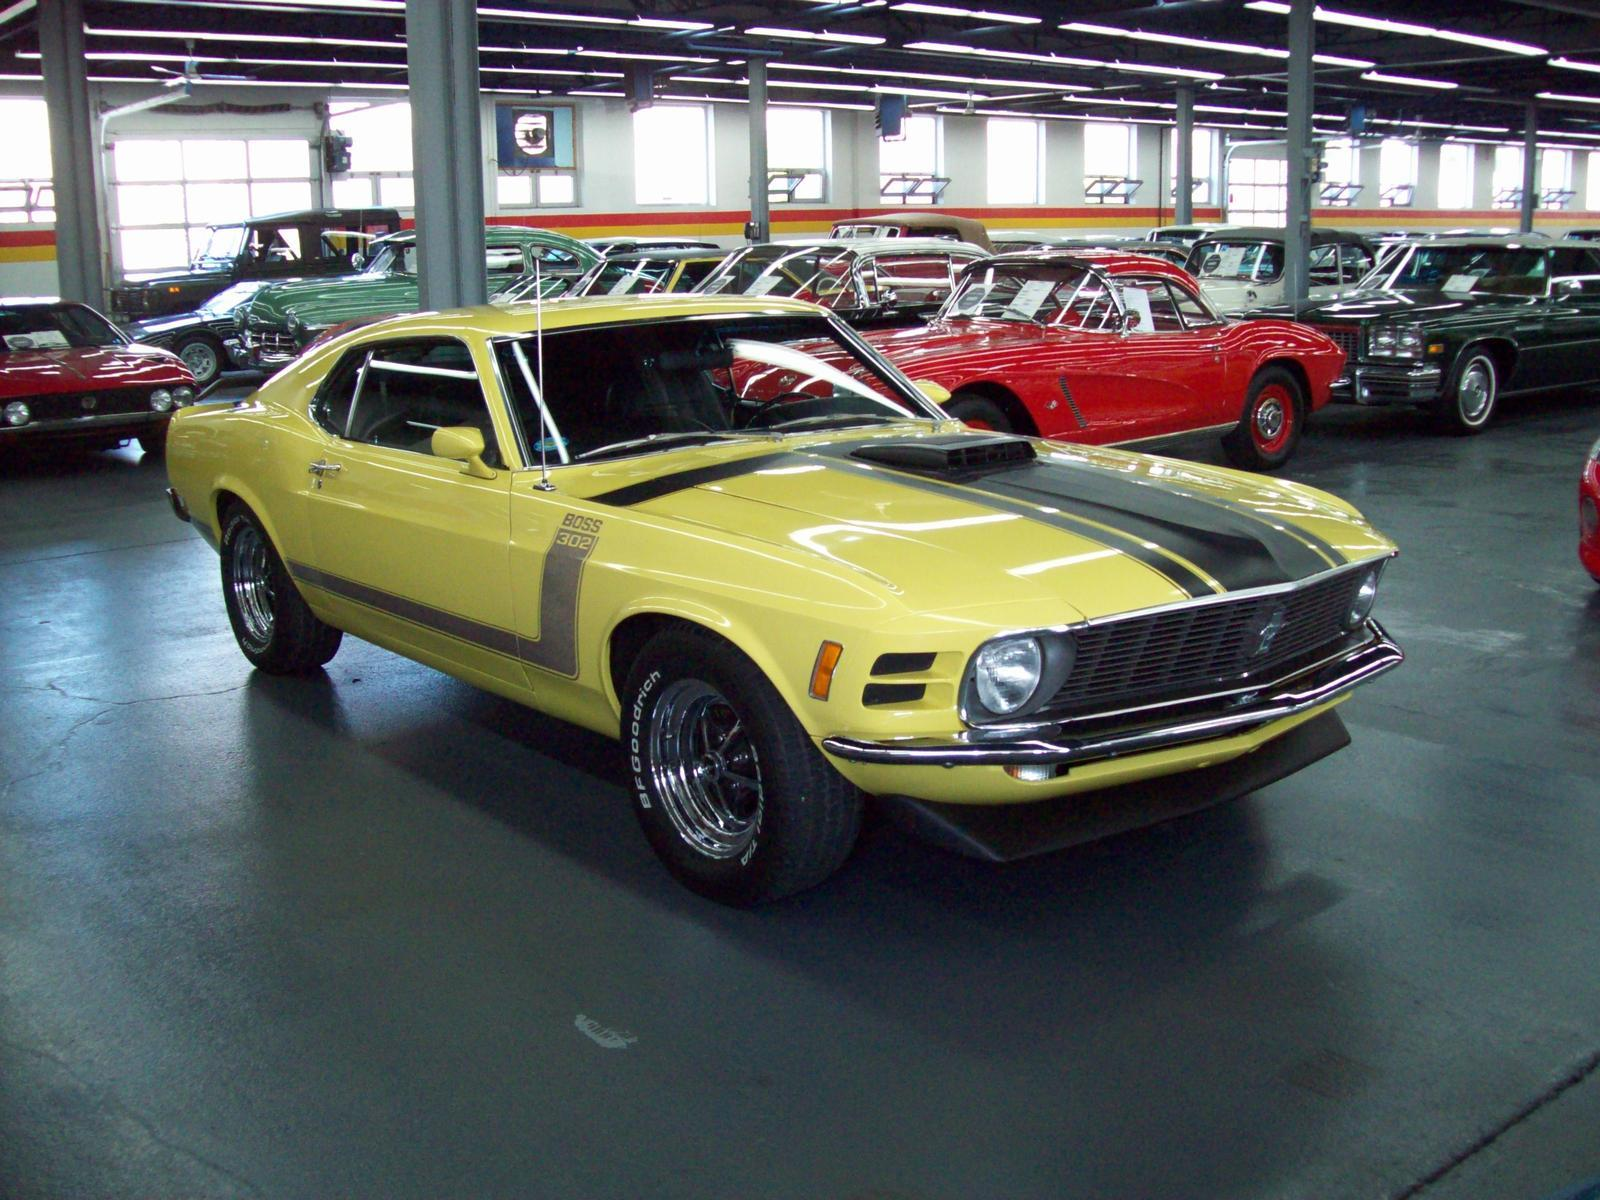 Used  Ford Mustang Boss  For Sale In Saint Leonard John Scotti Classic Cars Hr Y